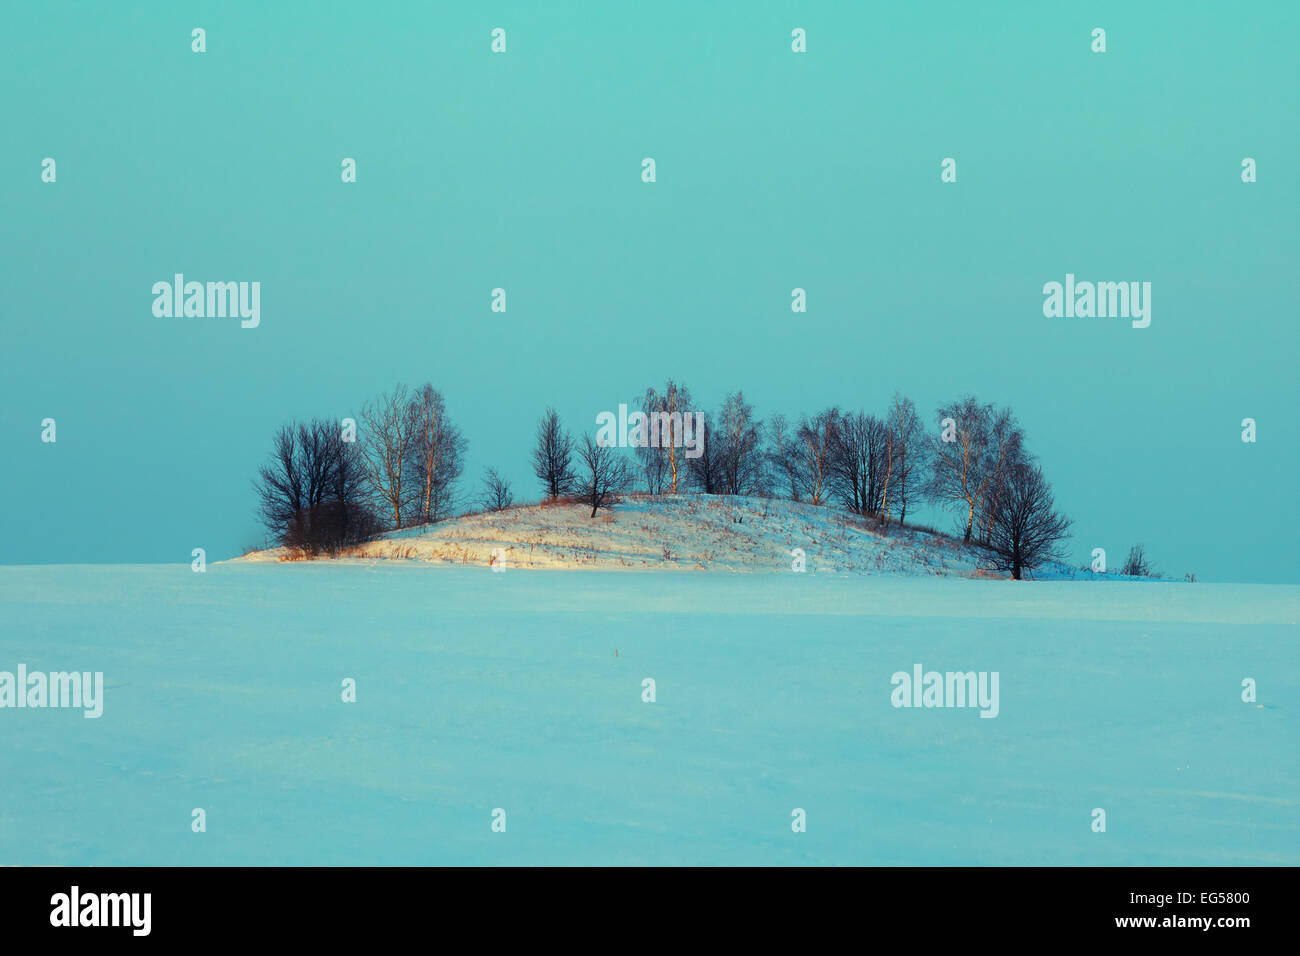 Hill with trees in the middle of a snow-covered field. Blue color toning - Stock Image